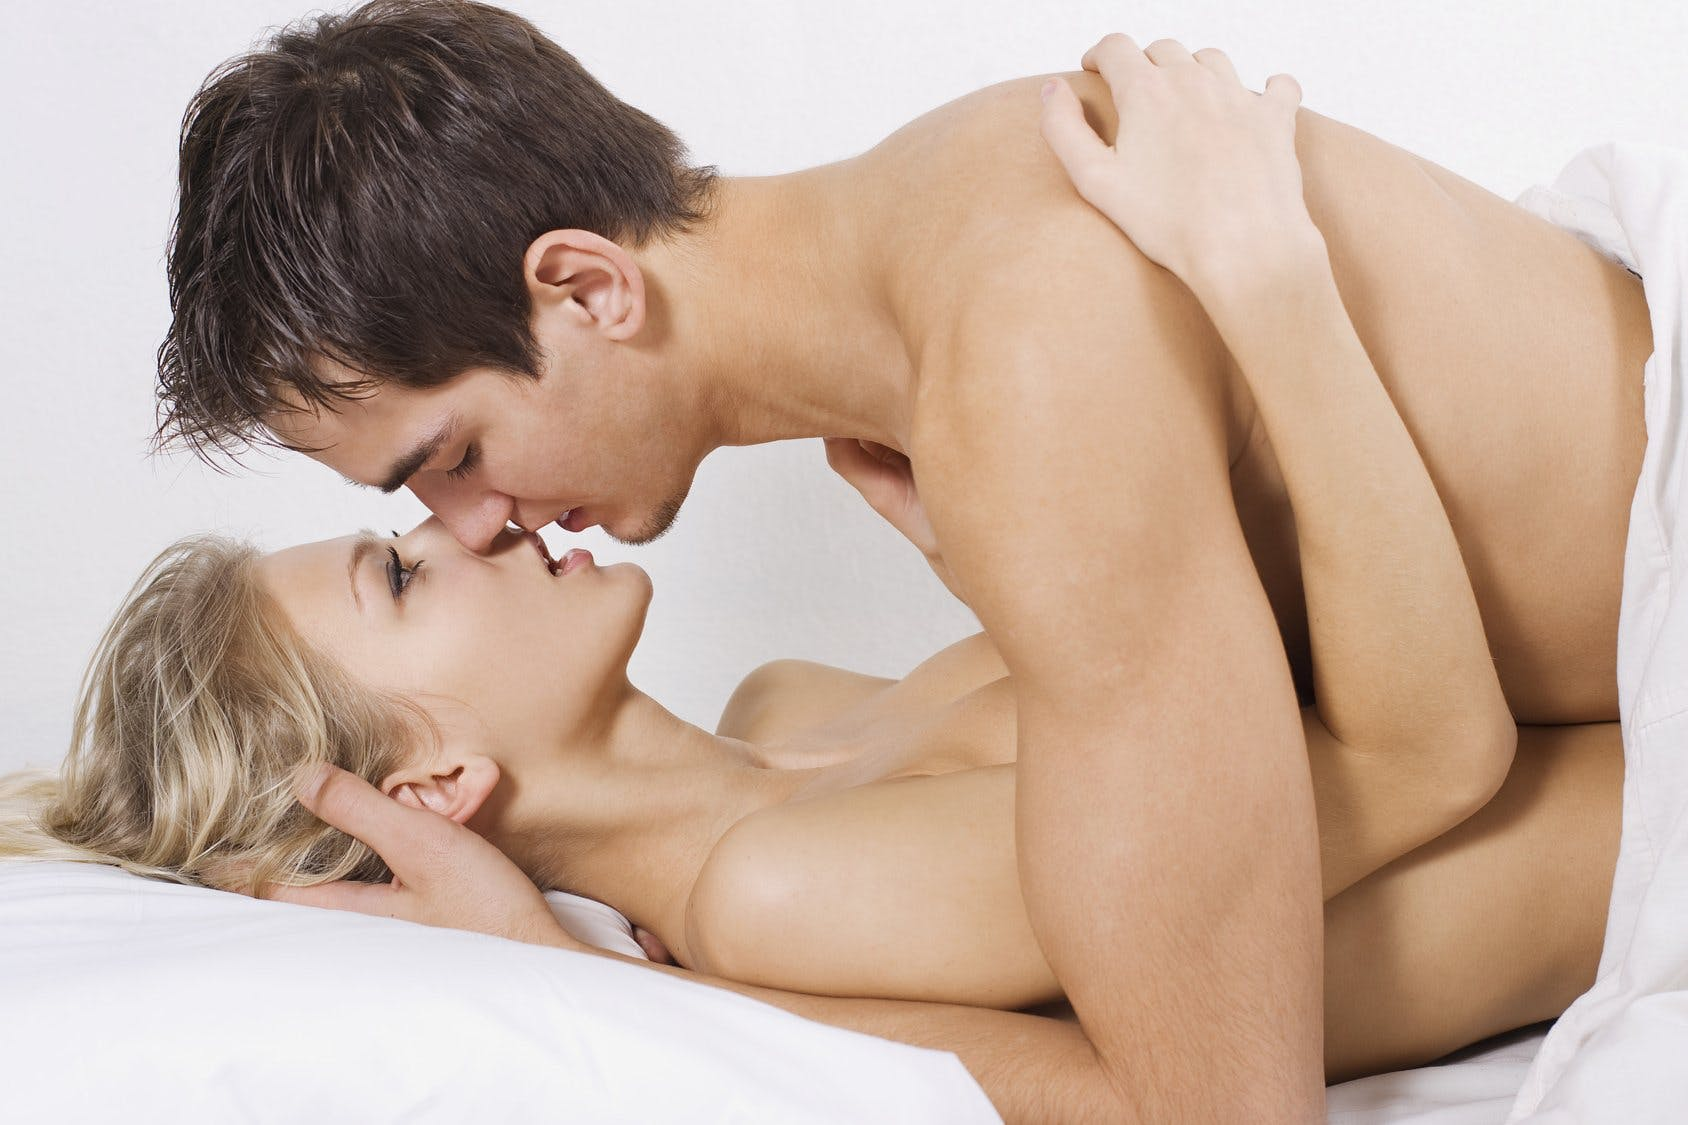 How Sex Can Help You Live a Better Life